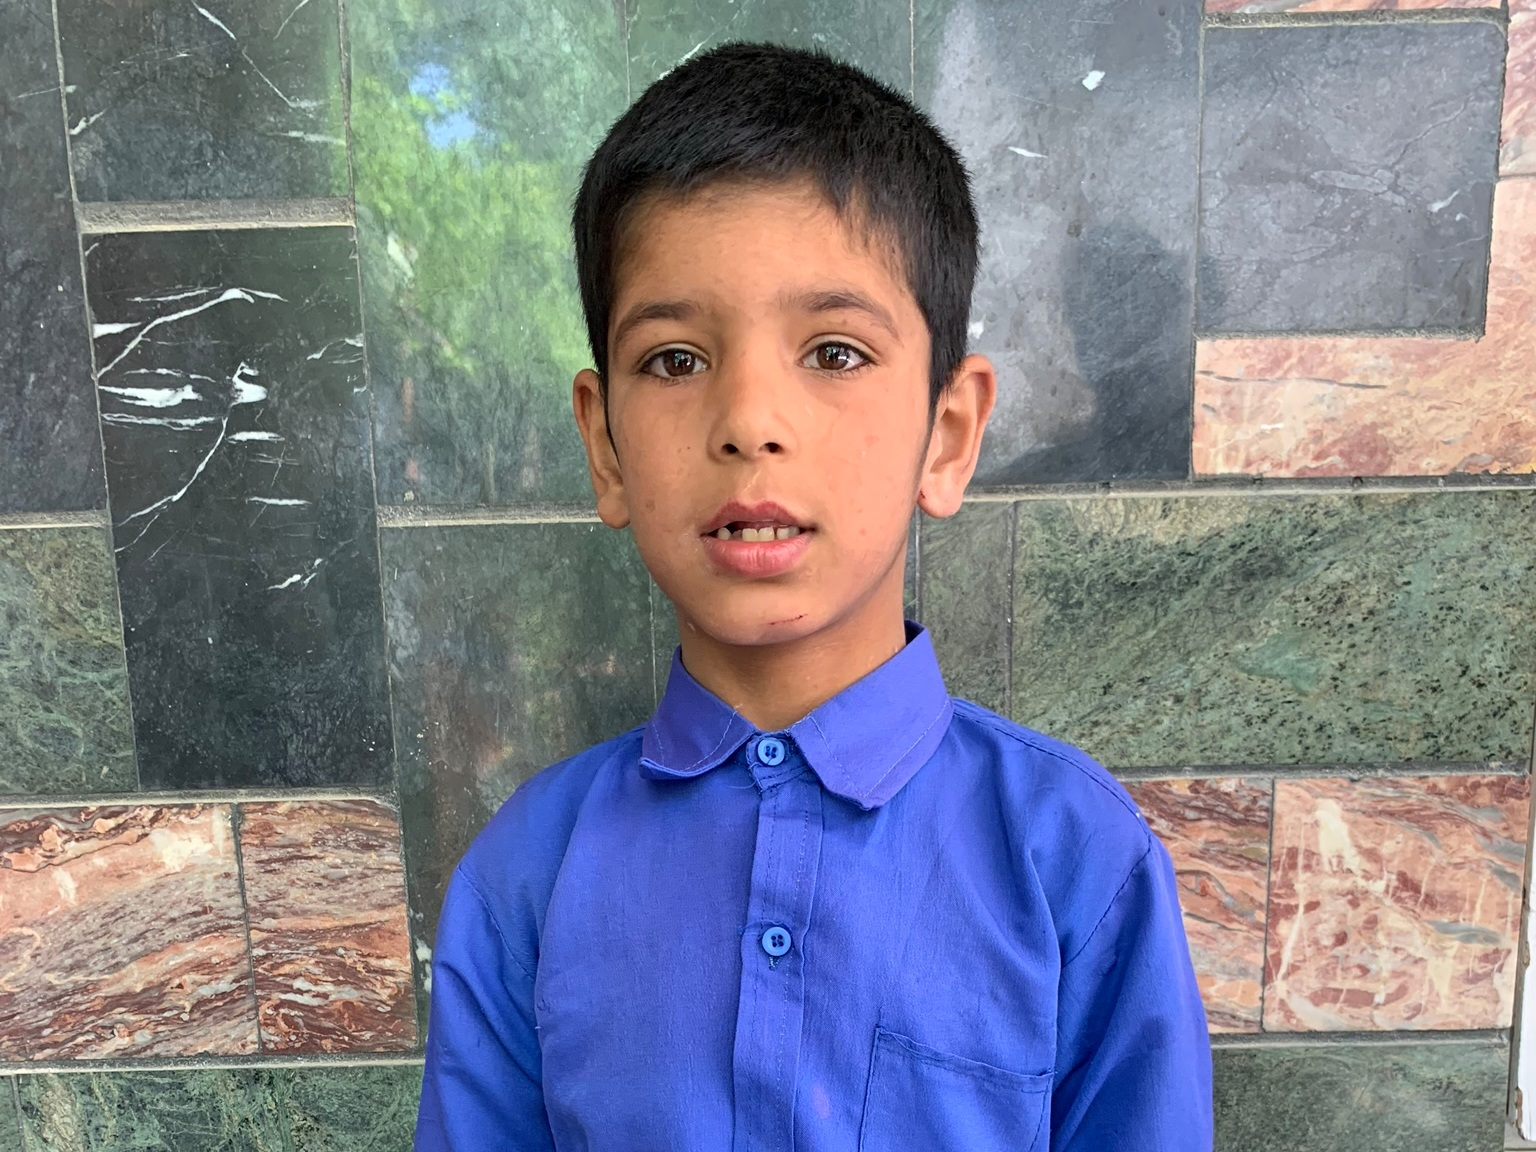 Ali Waisal, Age 7 - Ali Waisal has 1 sibling. His mother is currently unemployed. His father is a pharmacist.BE ALI WAISAL'S PARTNER >